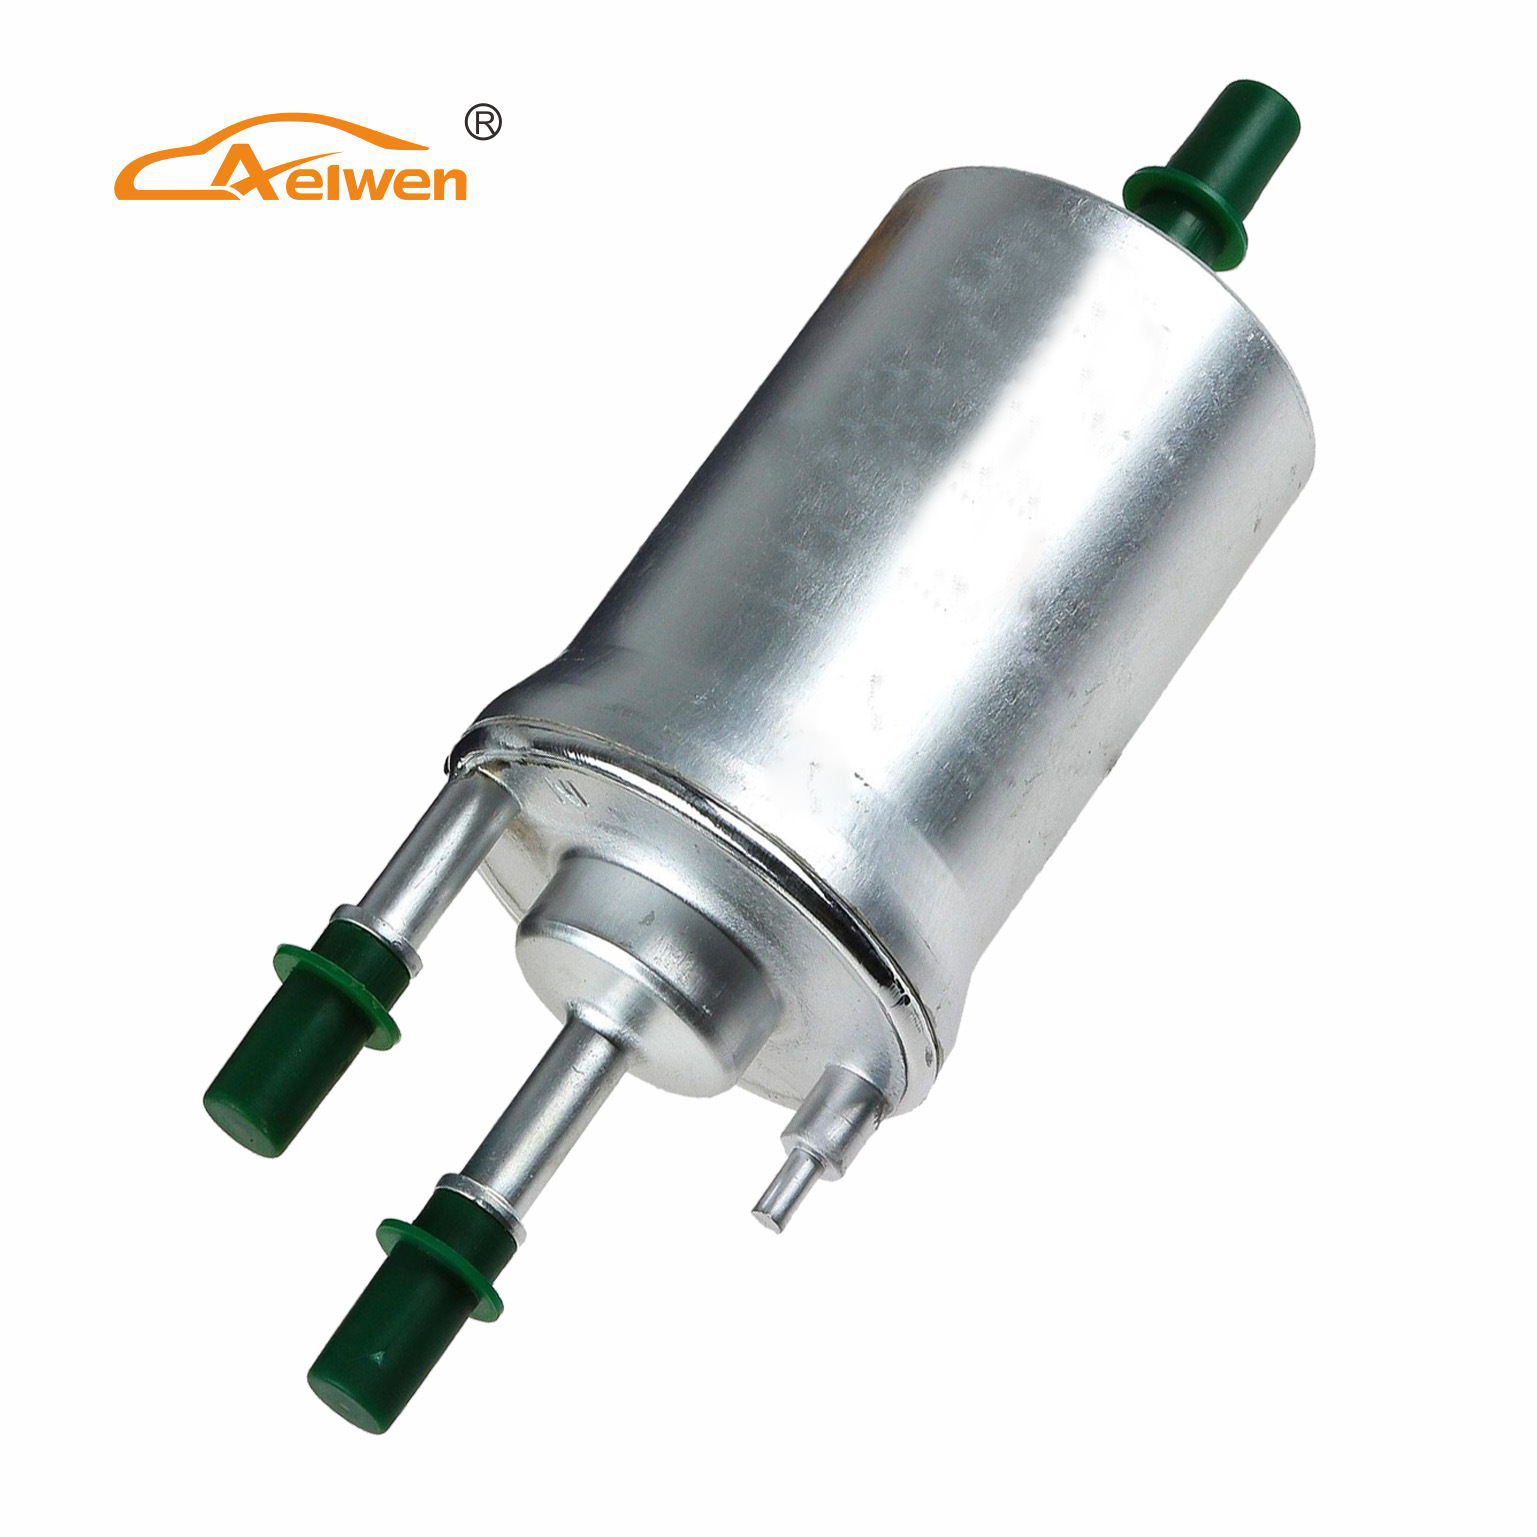 hight resolution of 6q0 201 051a aelwen fuel filter for vw jetta 2 5l